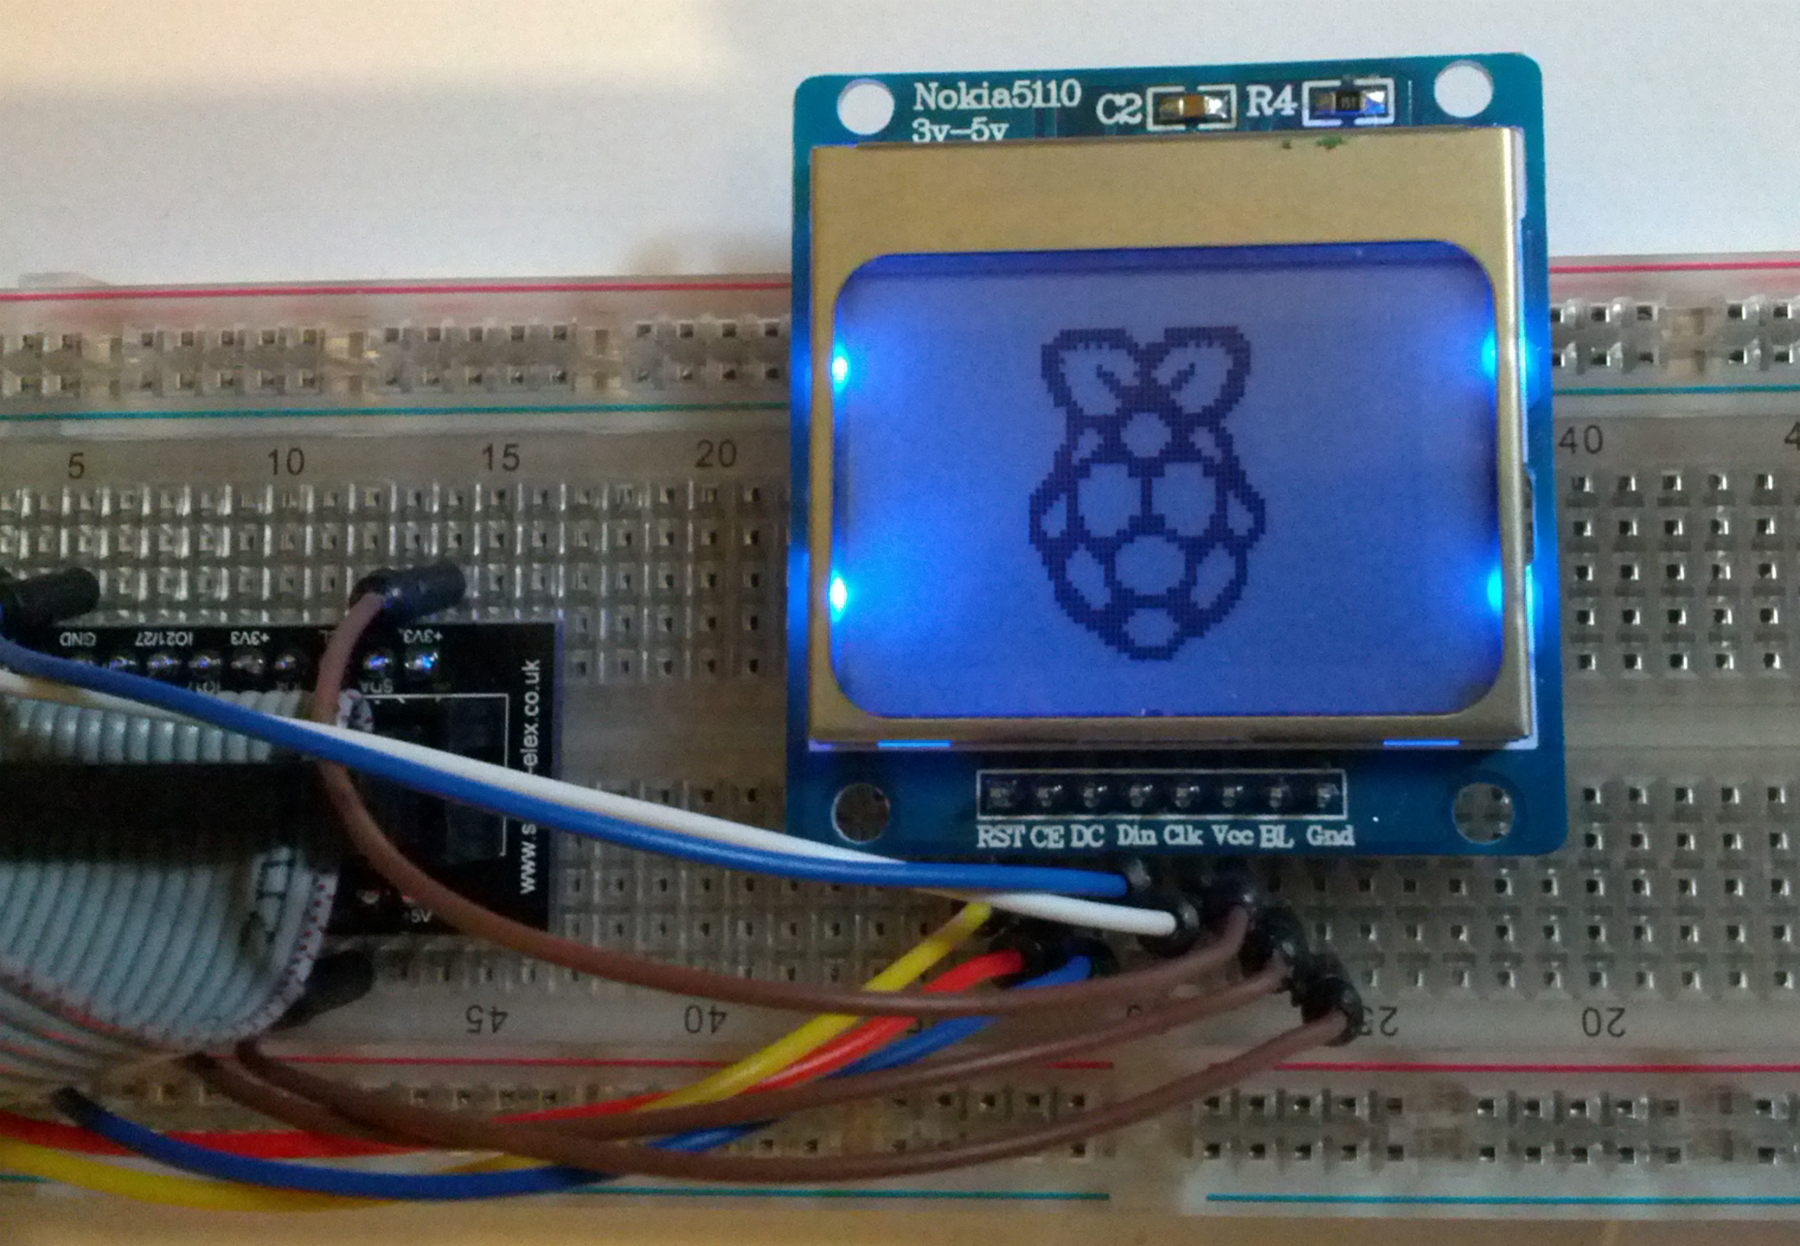 Lcd Display With Raspberry Pi Wiringpi For Python If You Dont See Anything Or Only The Backlight Is On Try Reconnecting Pins I Myself Did Few Mistakes Wiring Before Got It Working